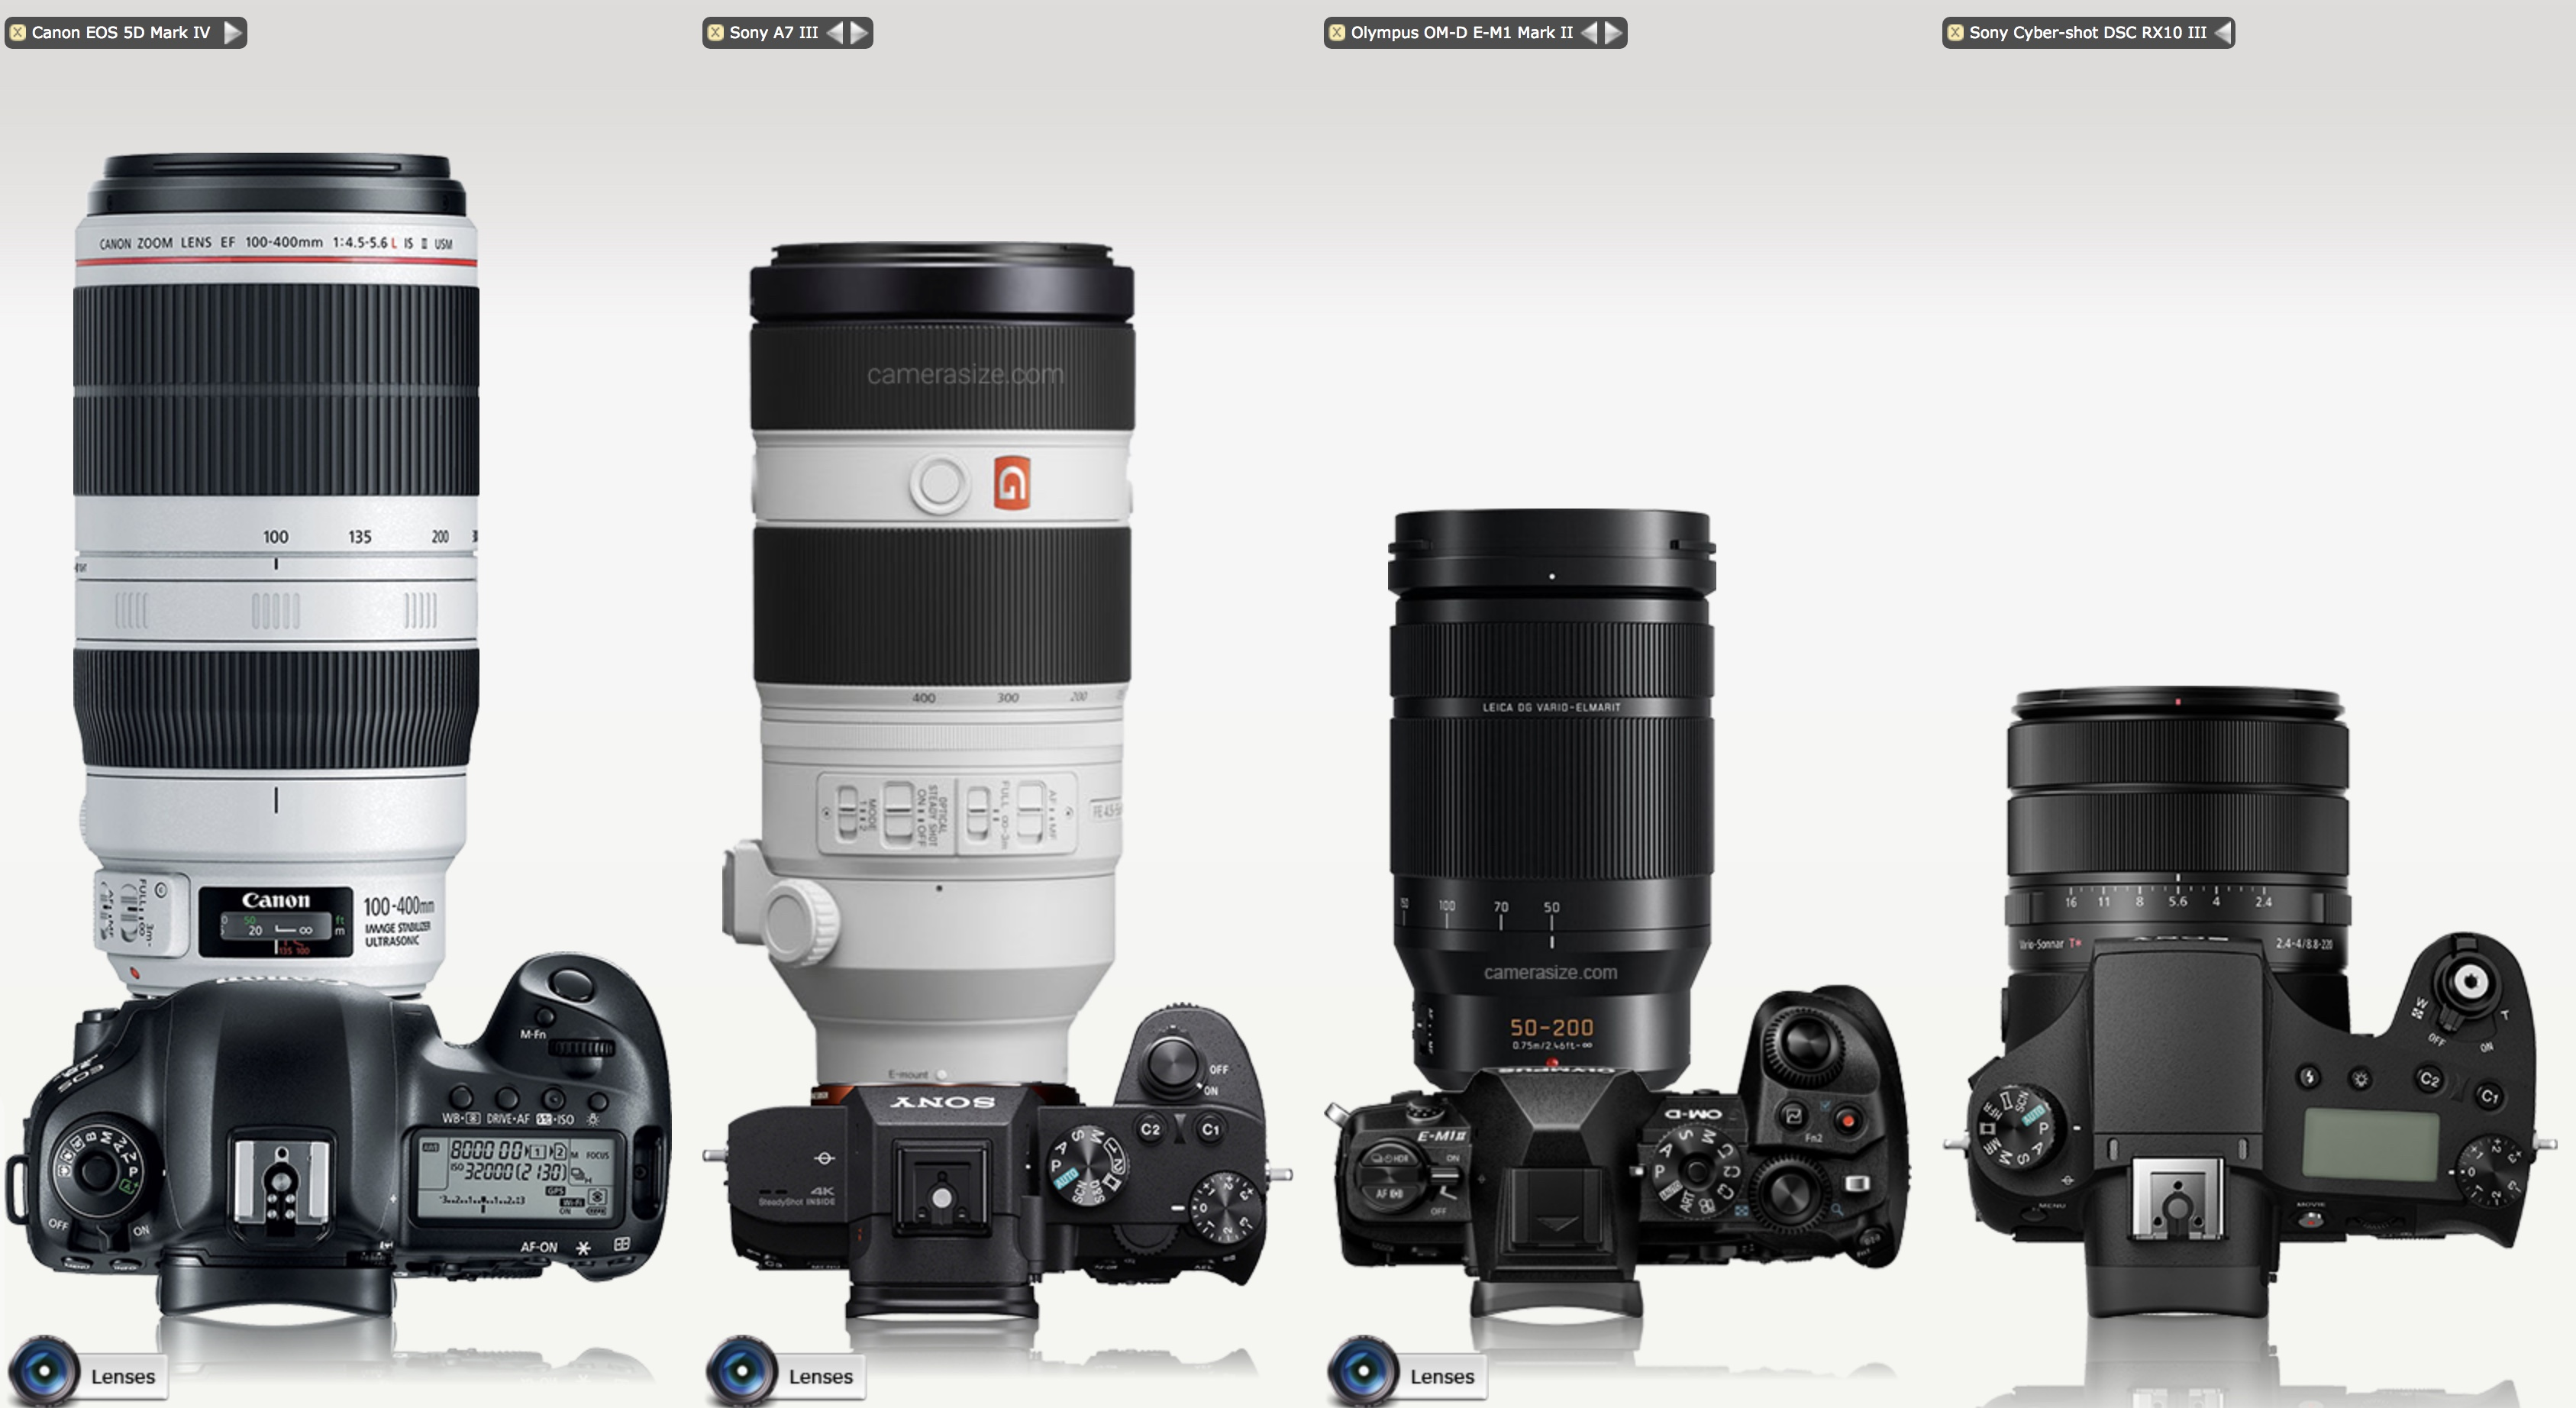 Galapagos Photography Camera Lens Parts Diagram Nikon Related Keywords Heres A Comparison Of Sizes All With 100 400mm Equivalent Focal Lengths Except The Rx10 Is 24 600mm